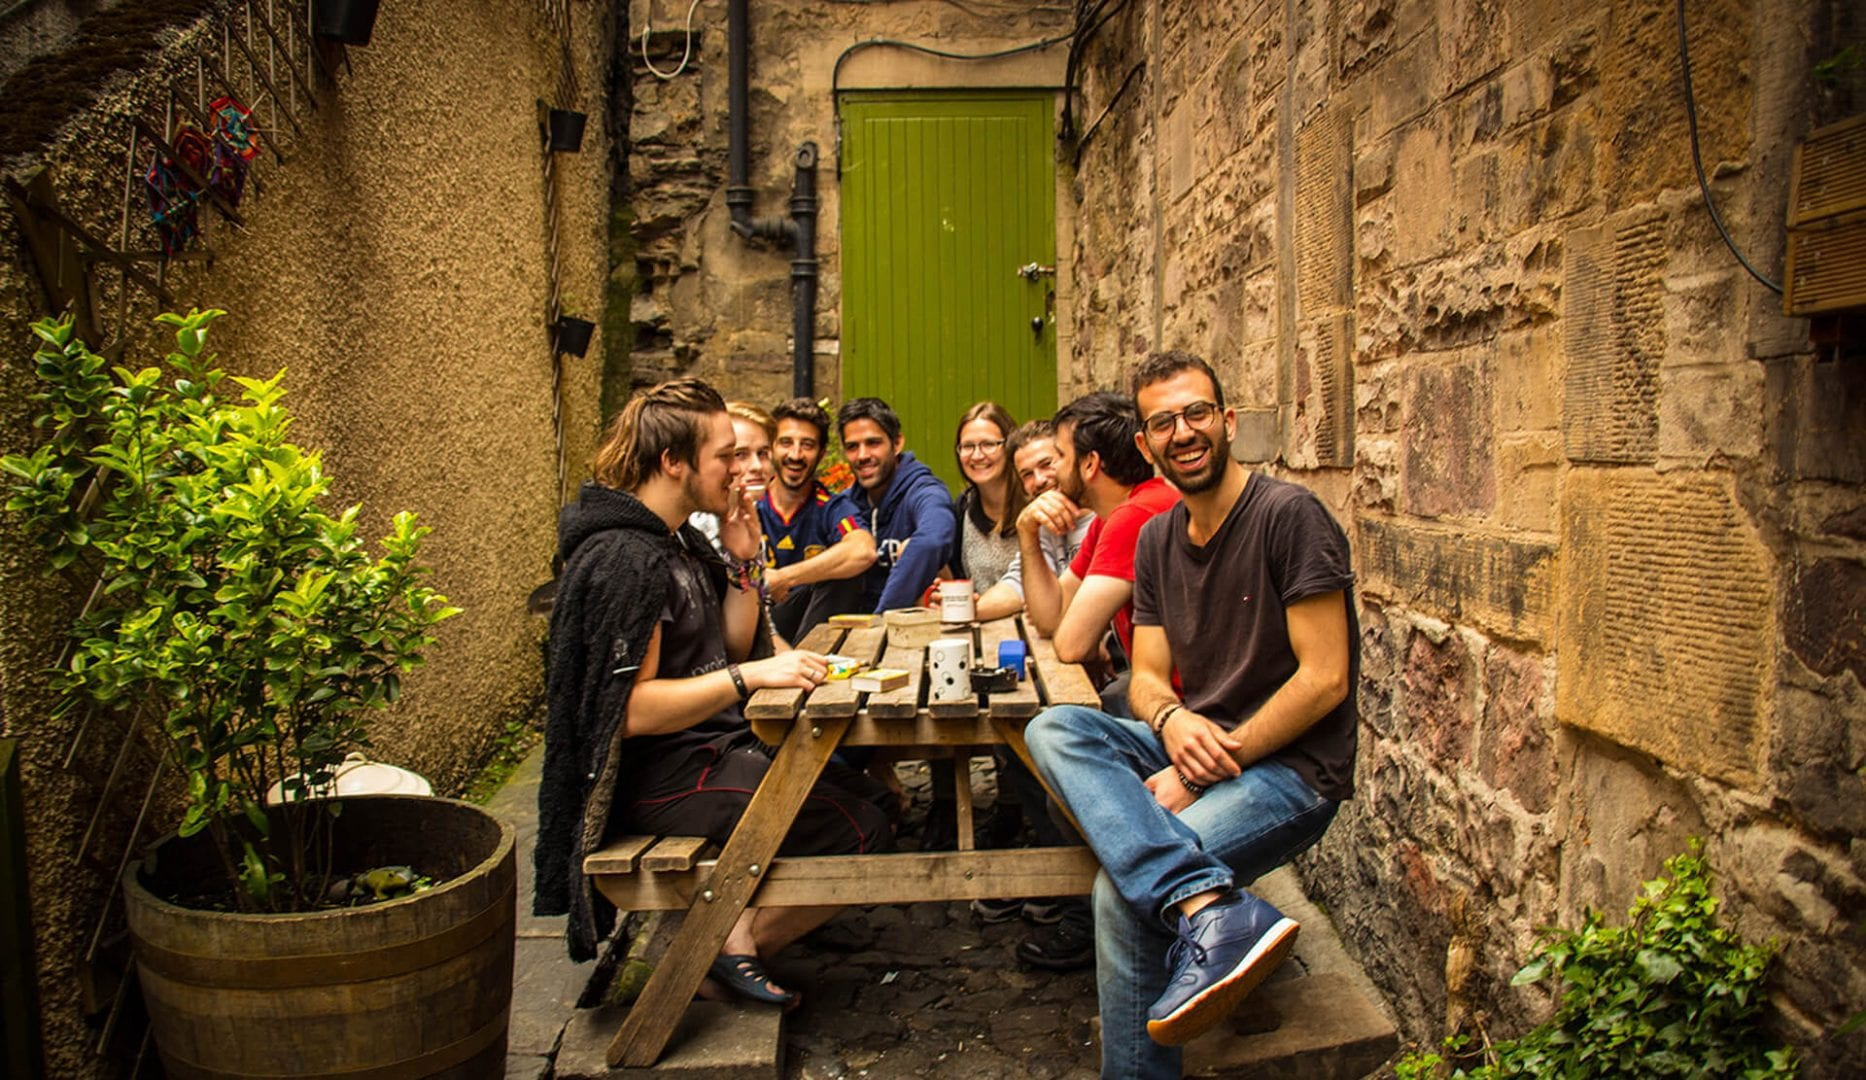 traverllers in the garden at high street hostel in edinbugh